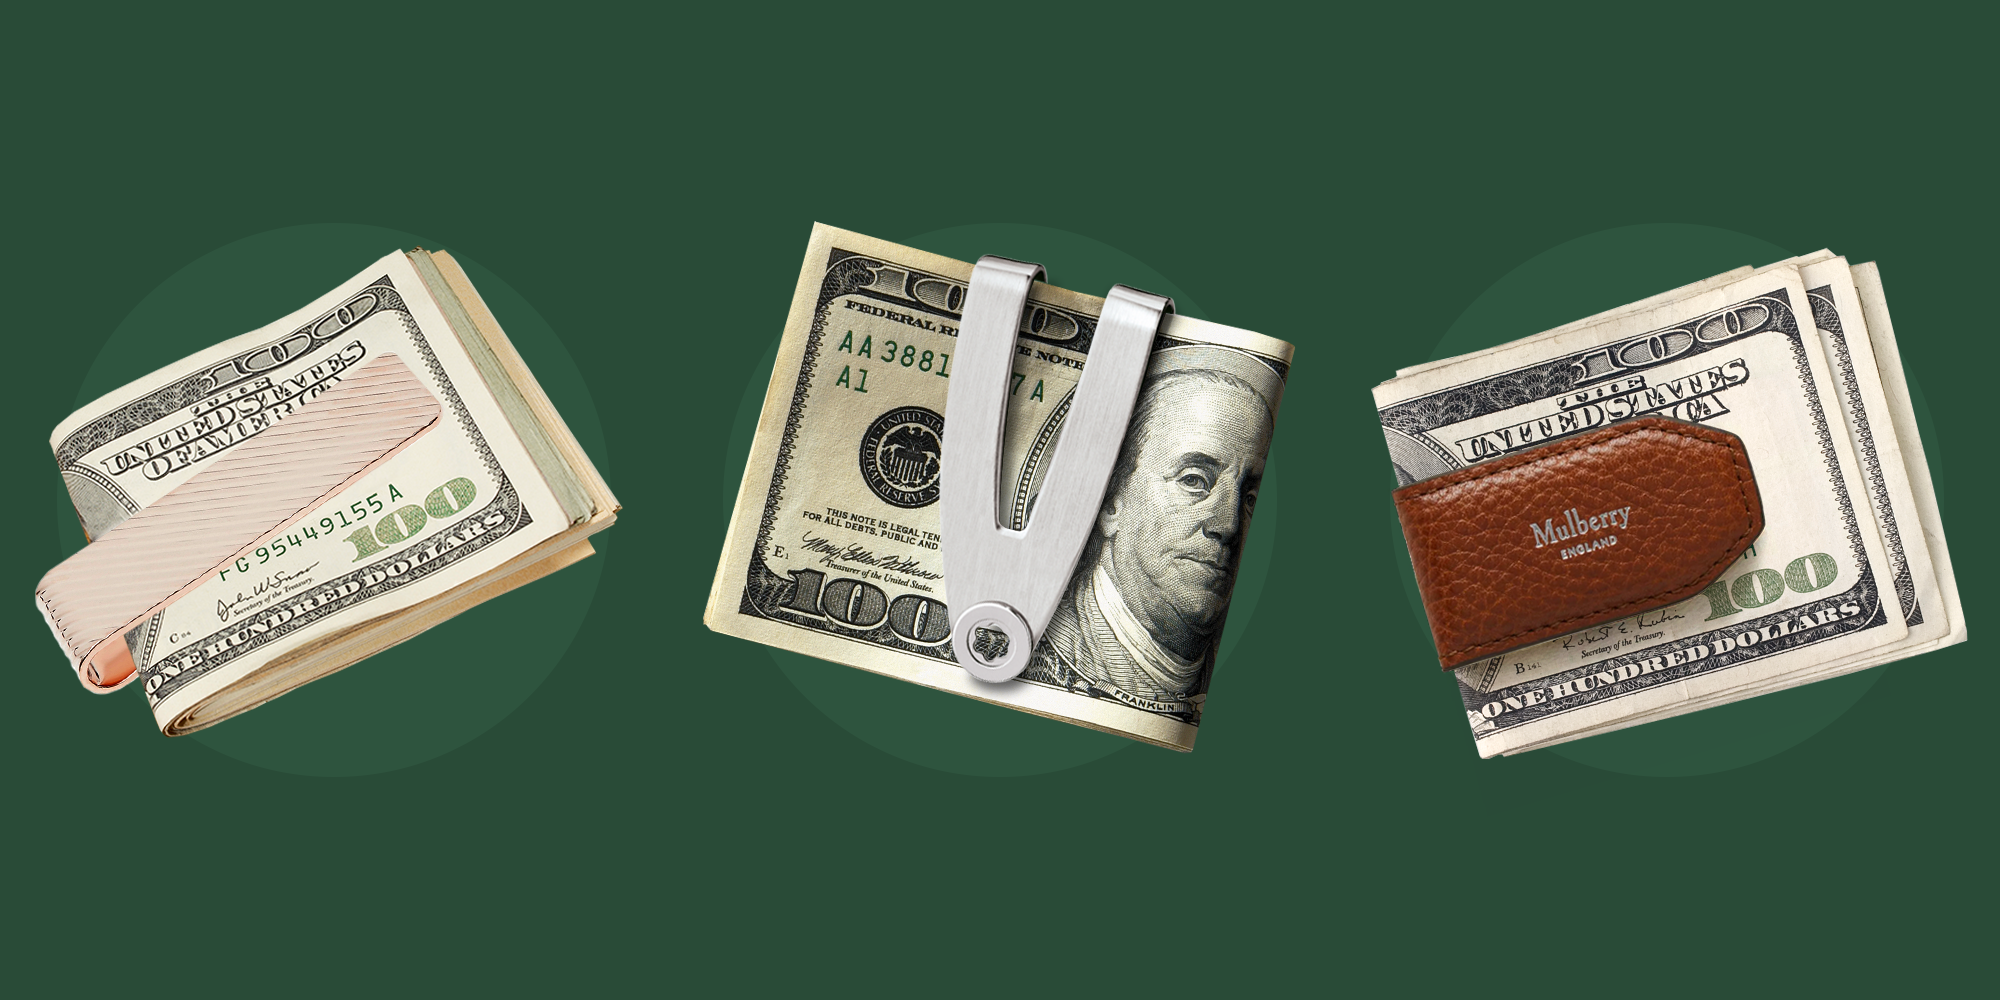 The 10 Best Money Clips That'll Let You Ditch Your Bulky Wallet